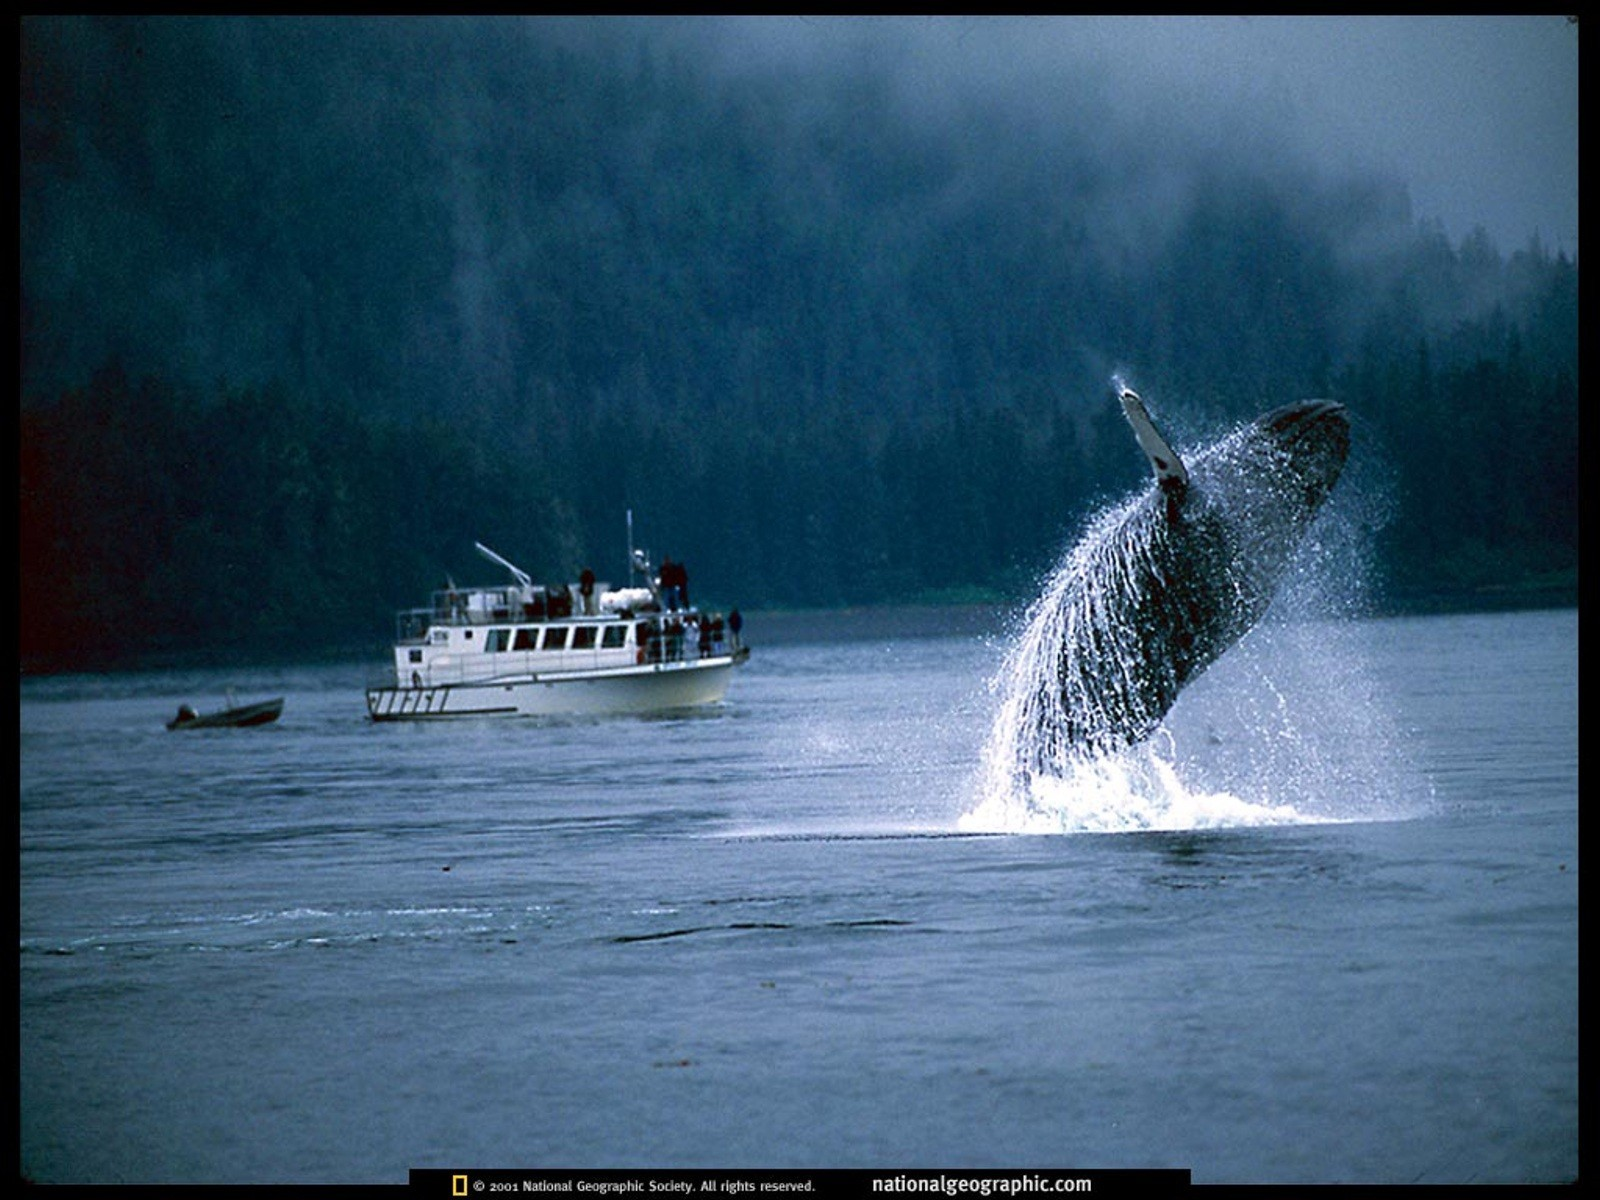 national geographic Whales HD Wallpaper